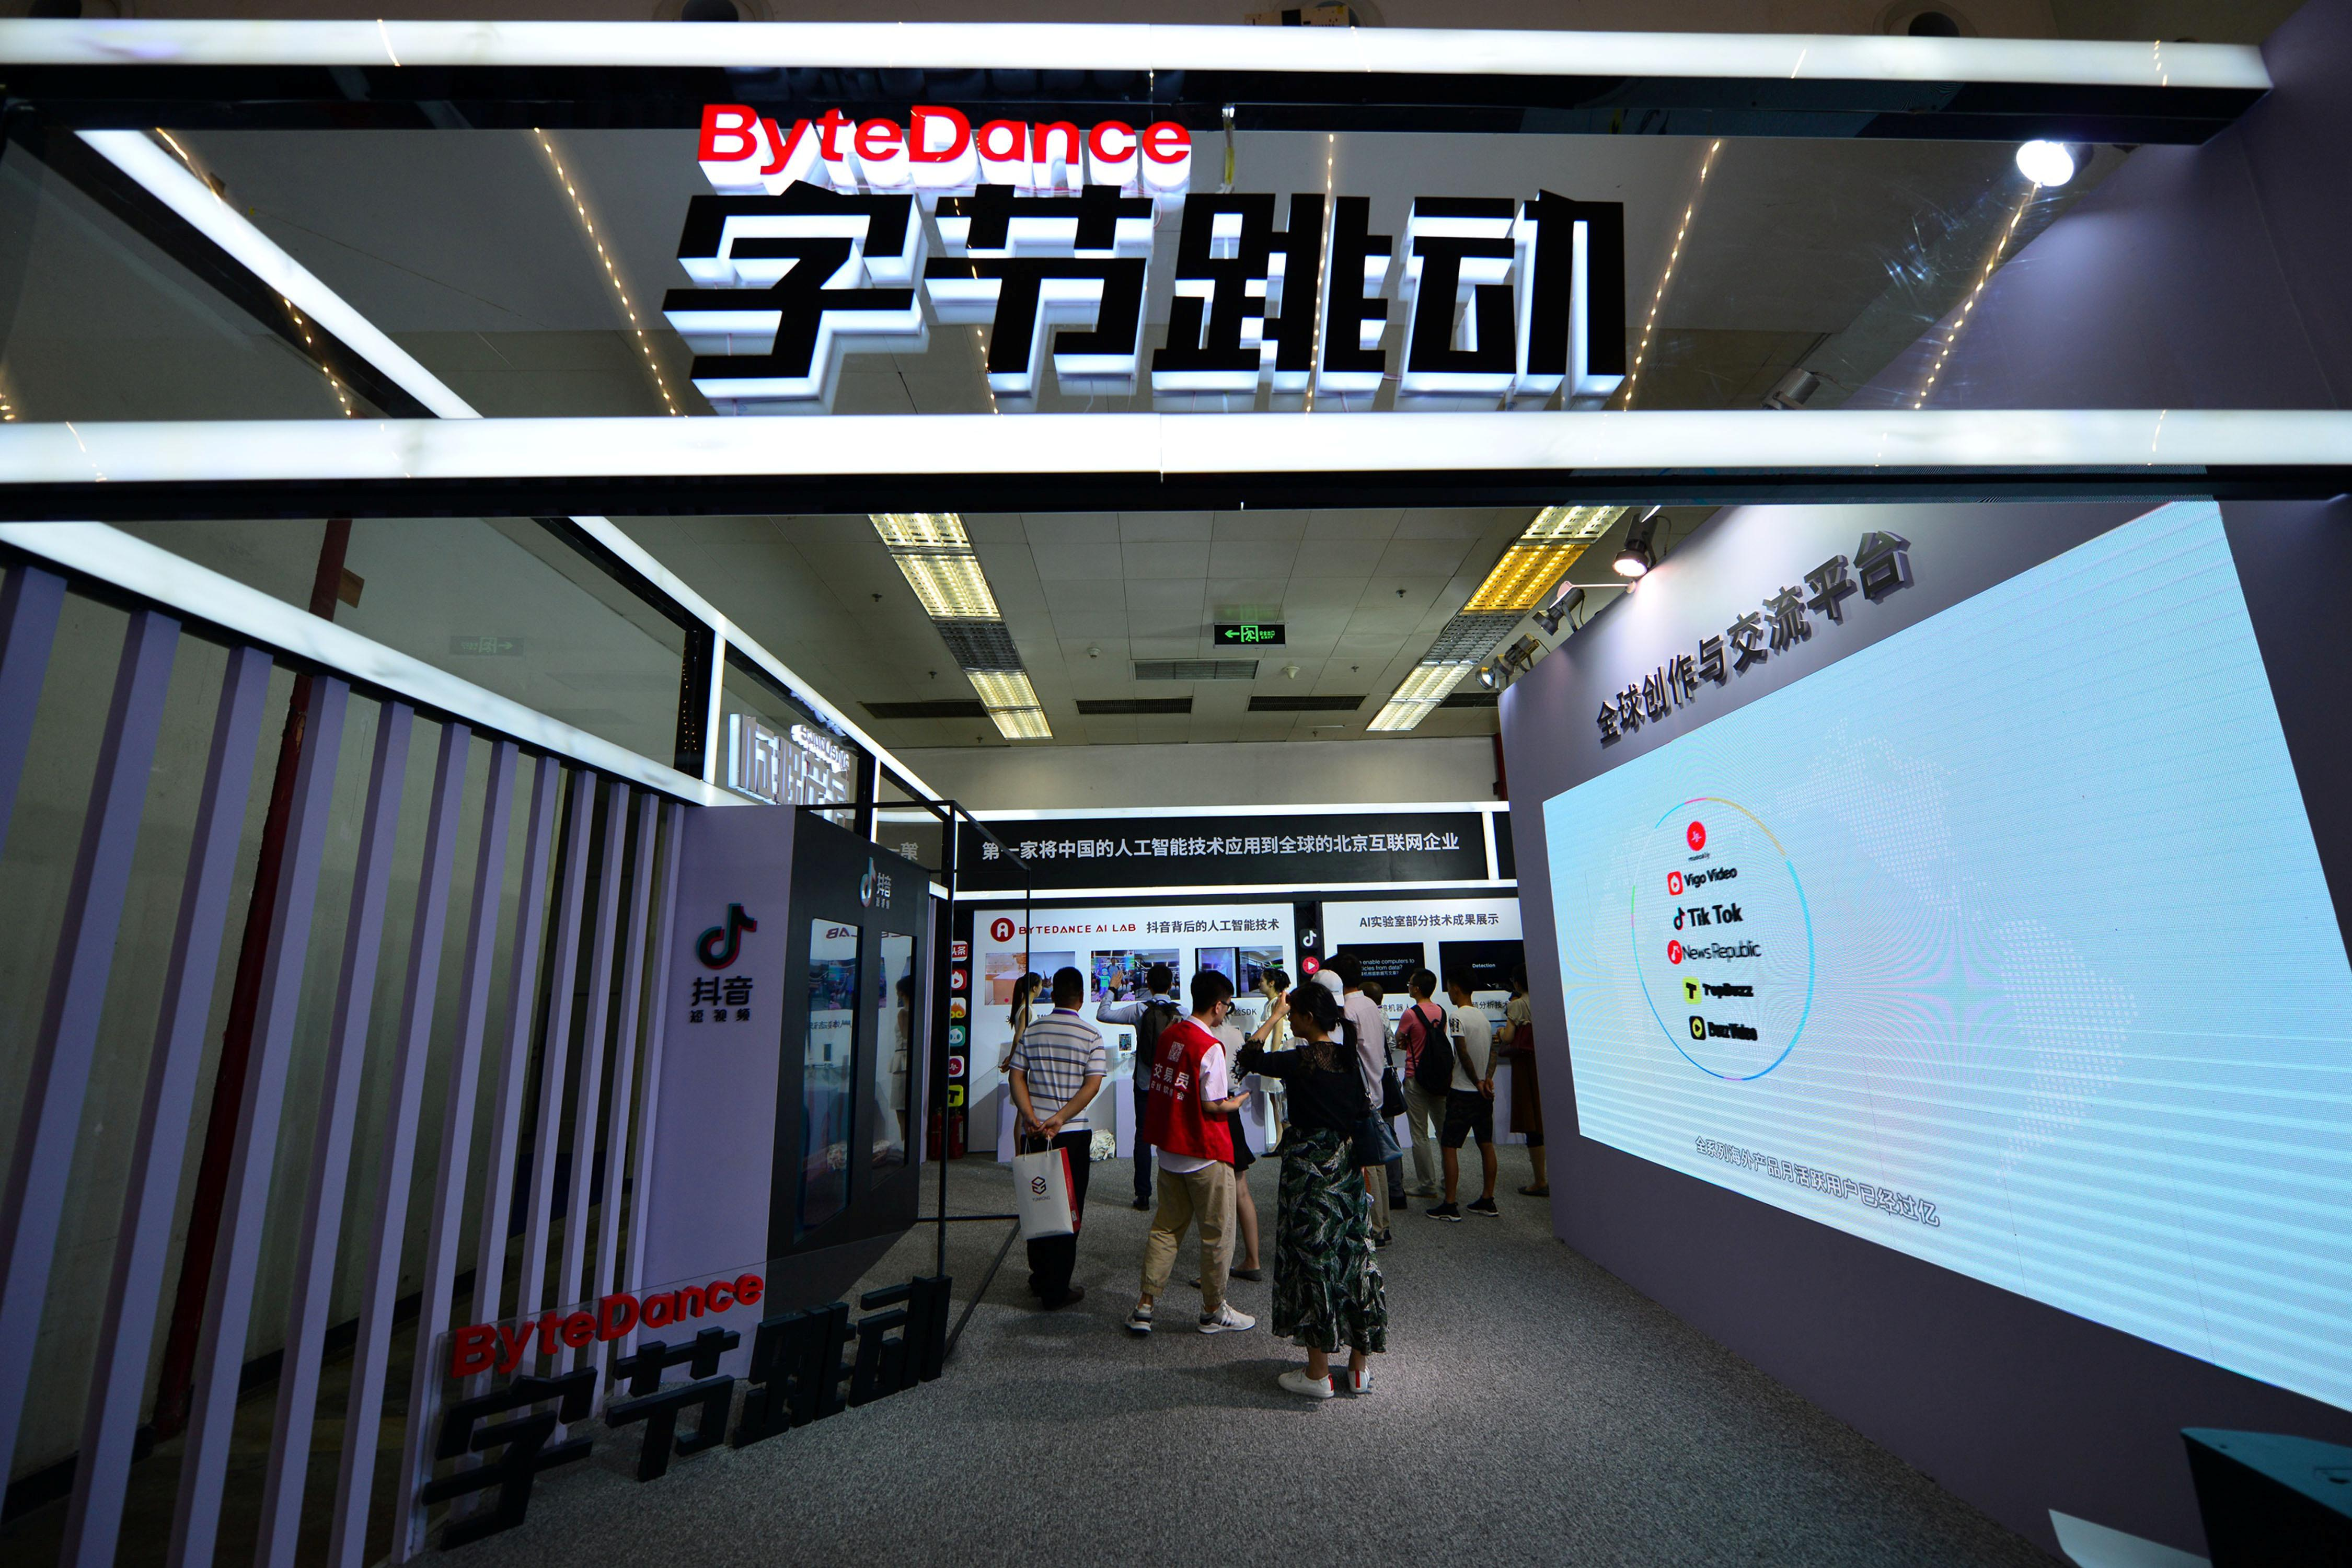 China's ByteDance launches video chat app, moves in on Tencent's turf